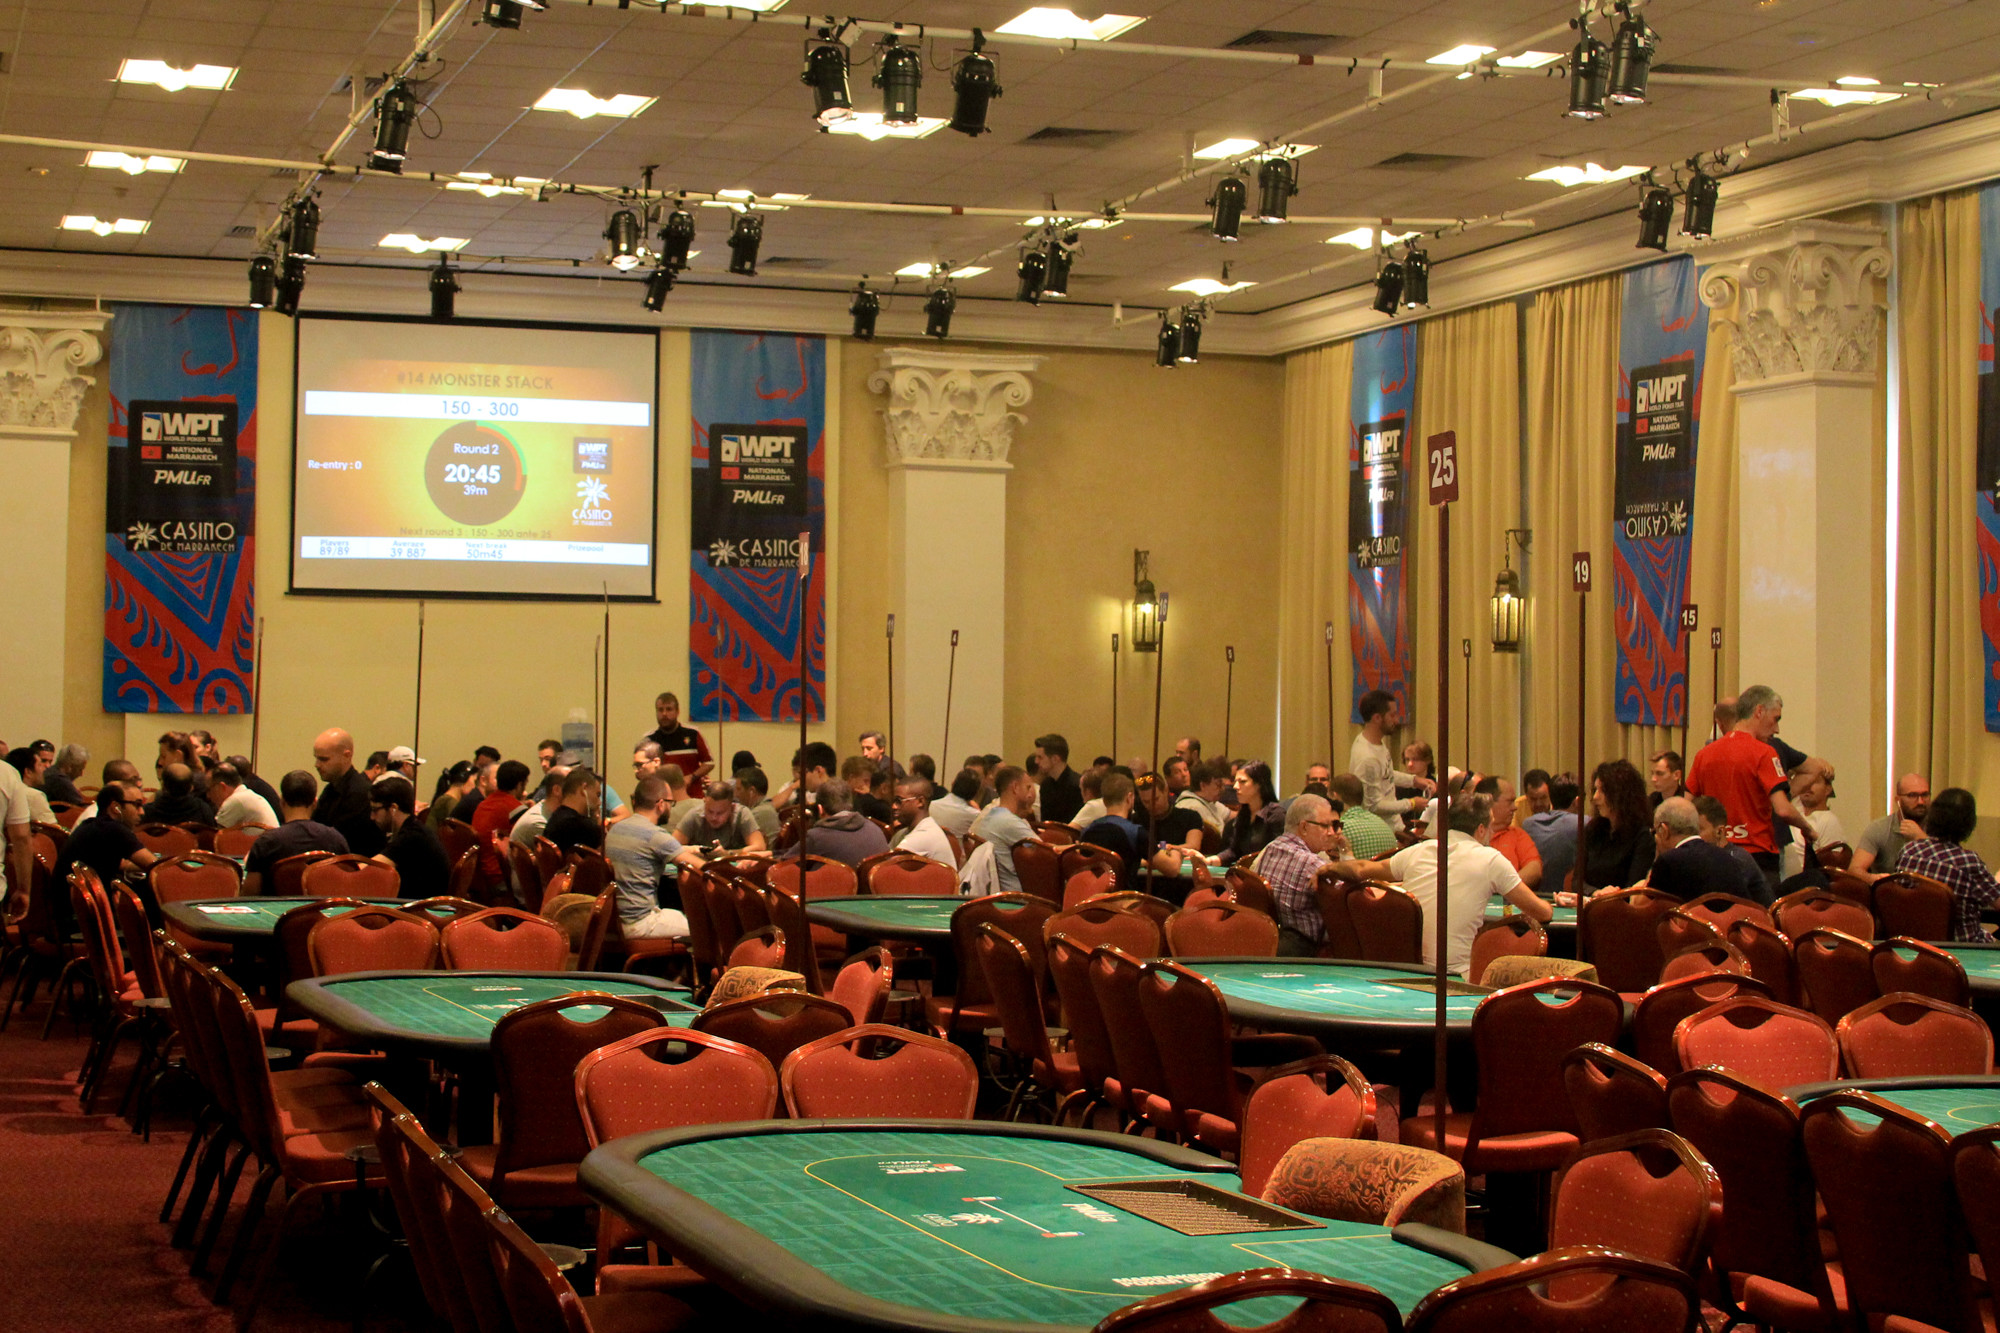 Poker big one for one drop 2014